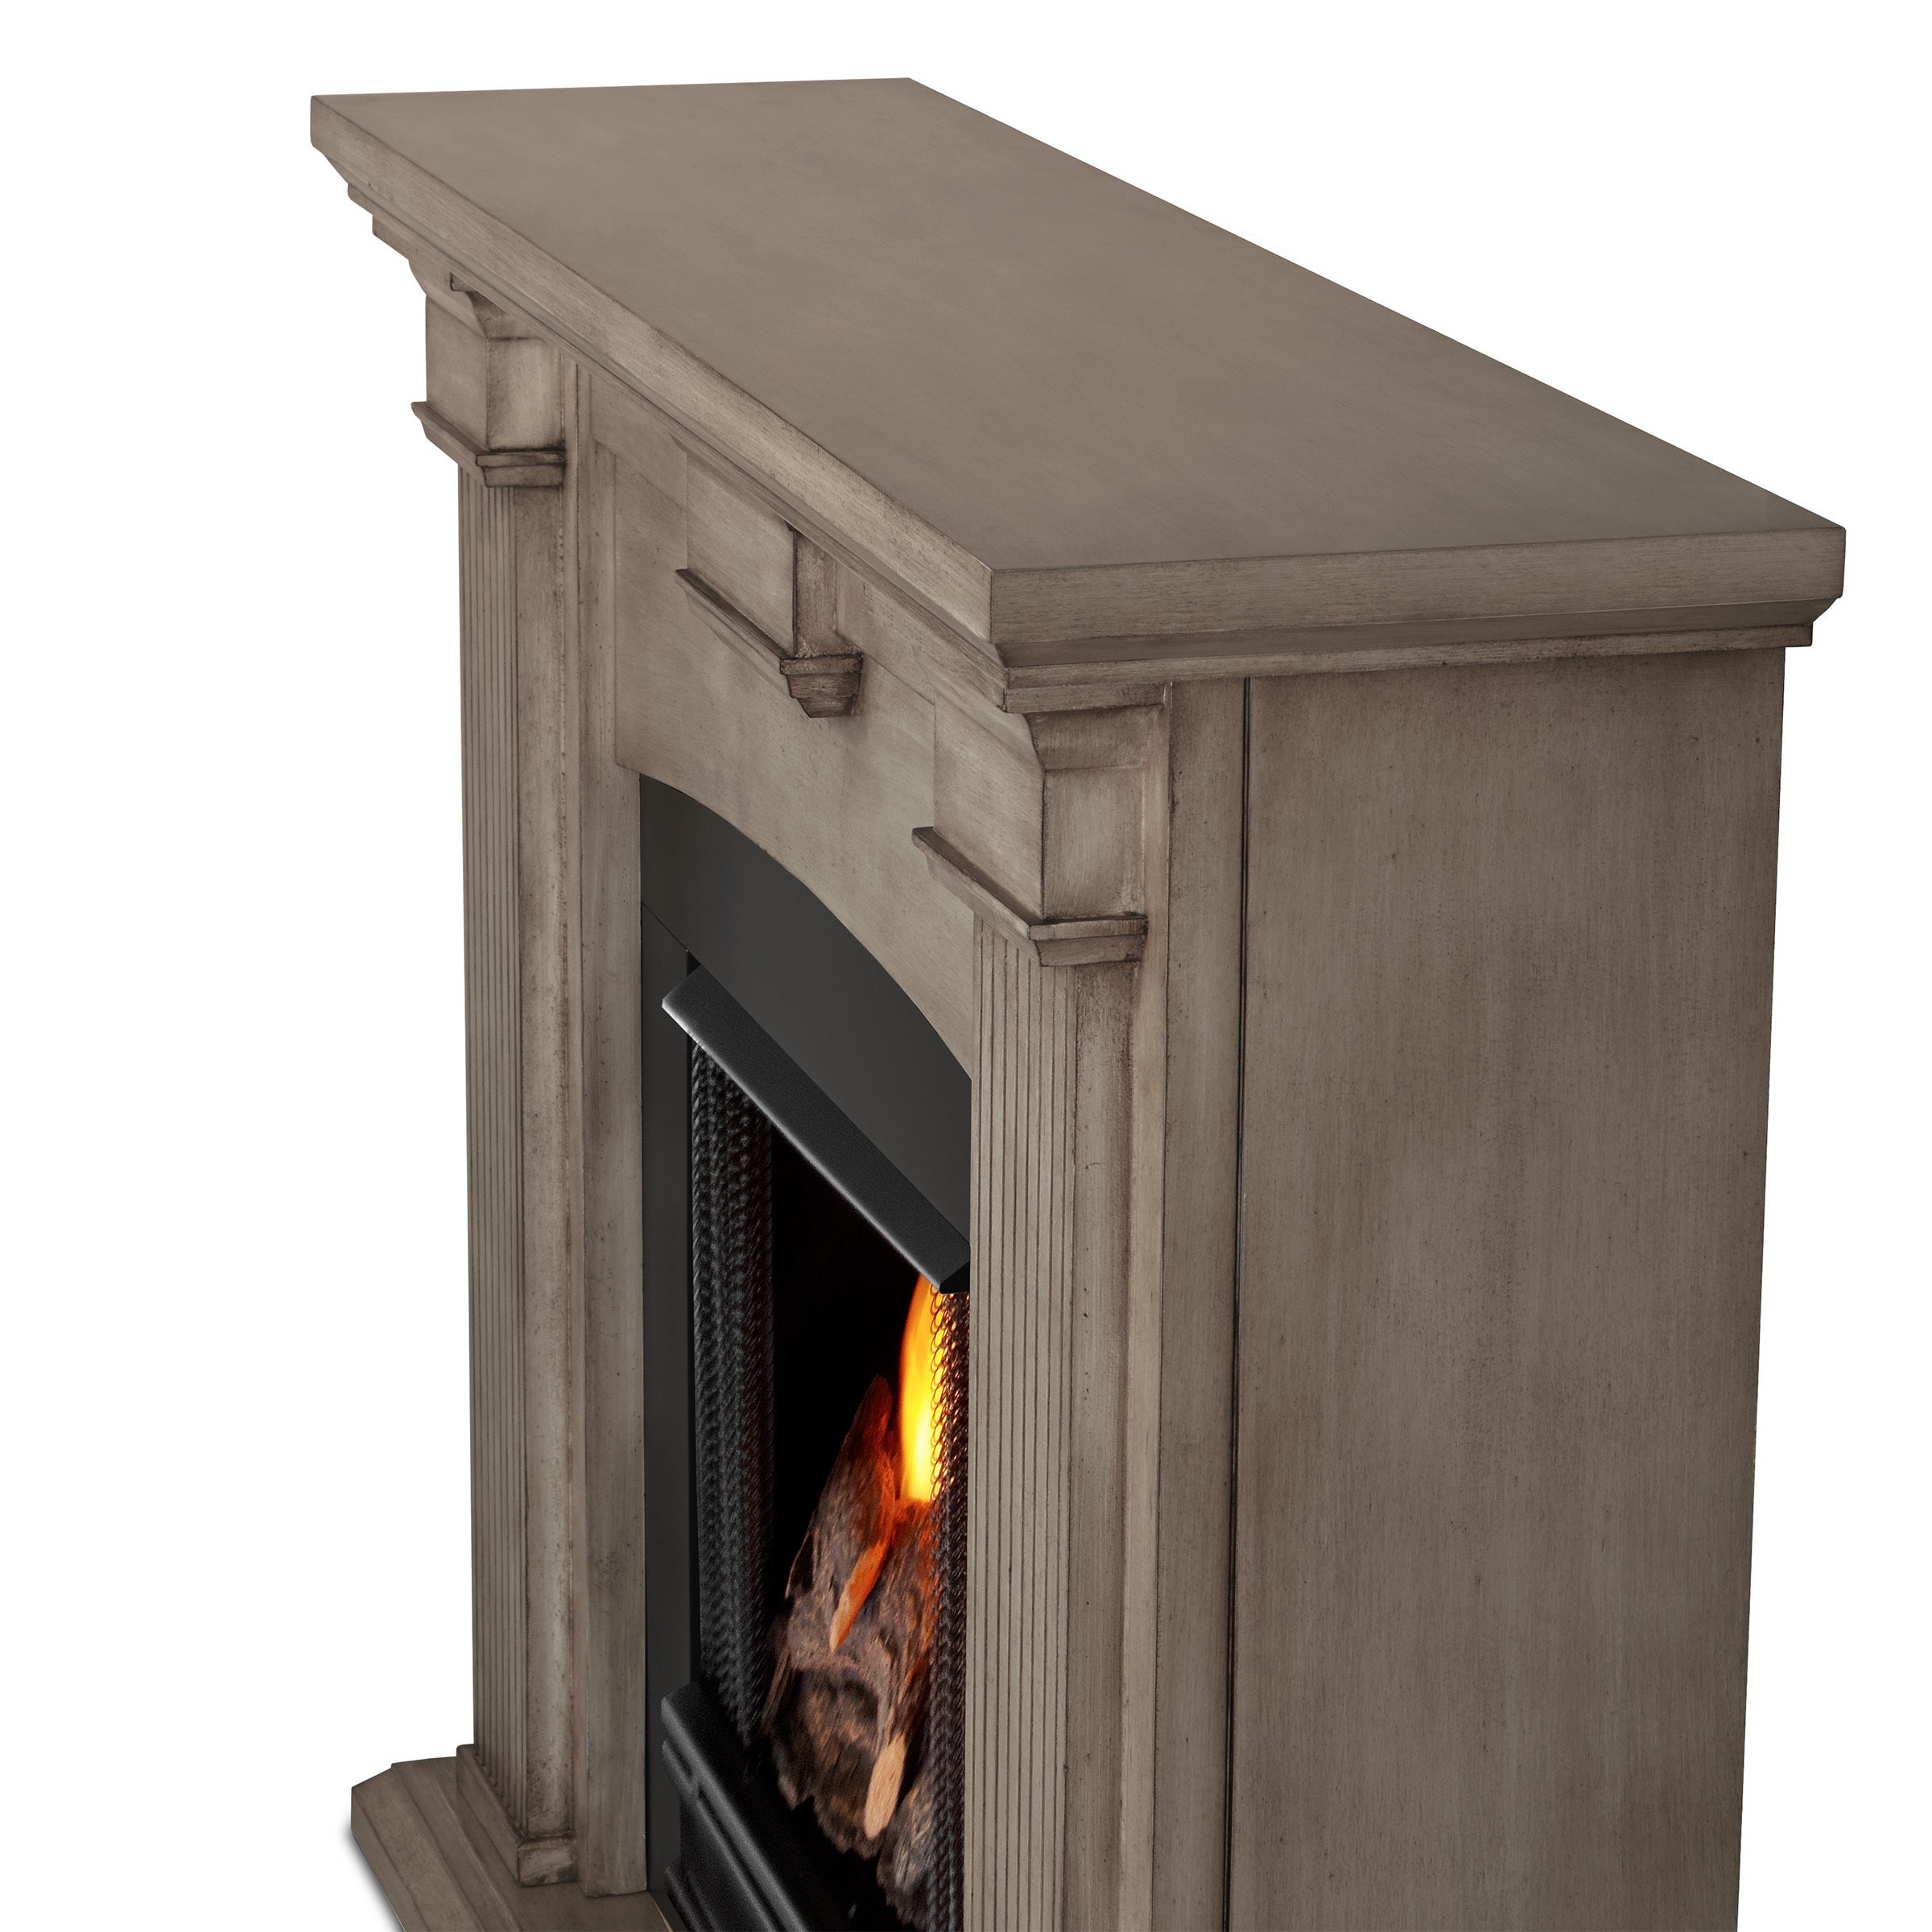 country cleveland gel showcase fireplace gas ri insert log ma fuel the spa patio stove inserts and glo logs heat